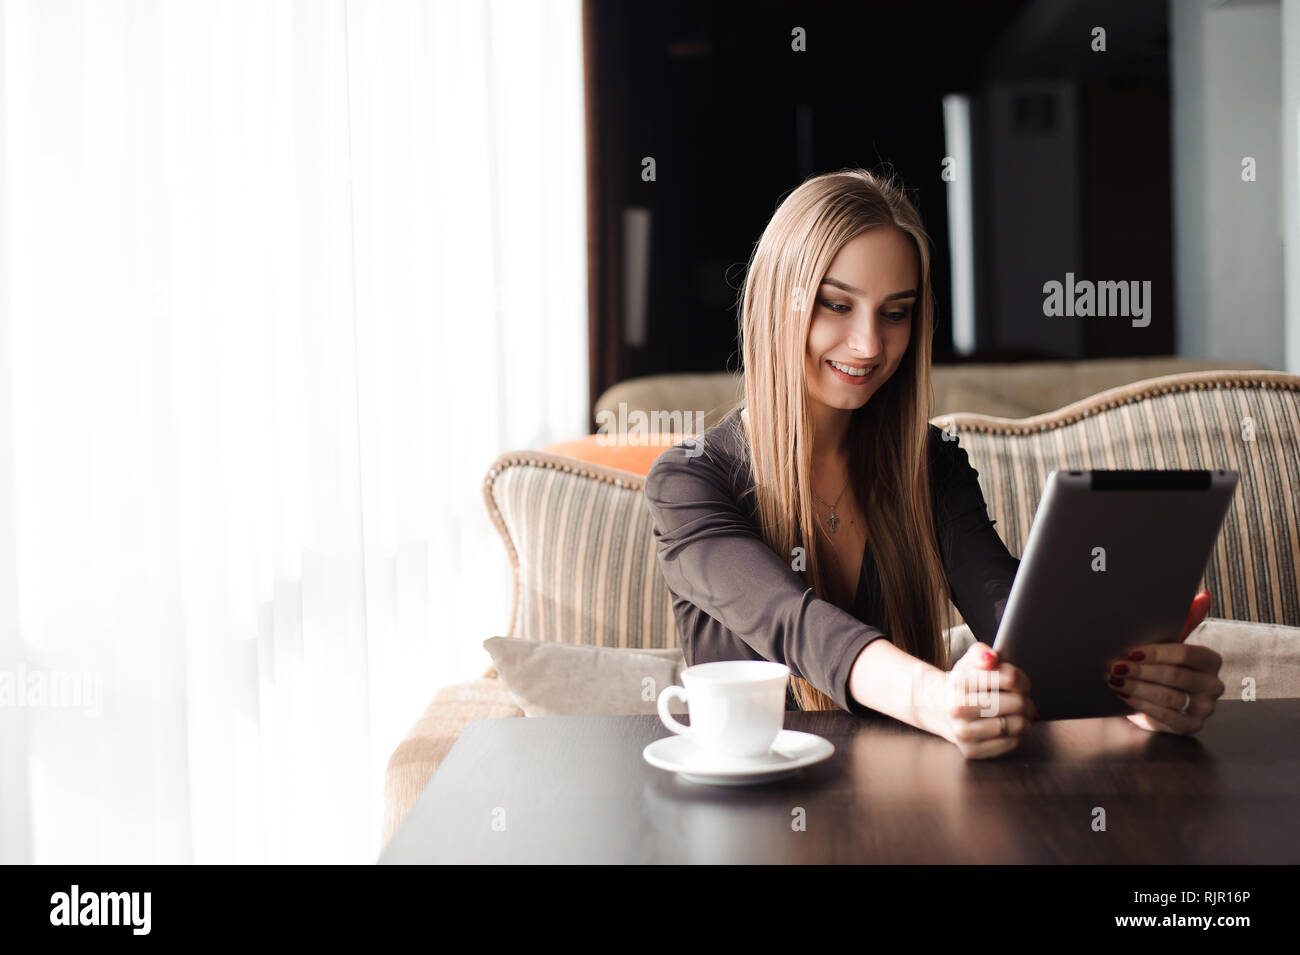 Beautiful pregnant woman using digital tablet at table in cafe - Stock Image